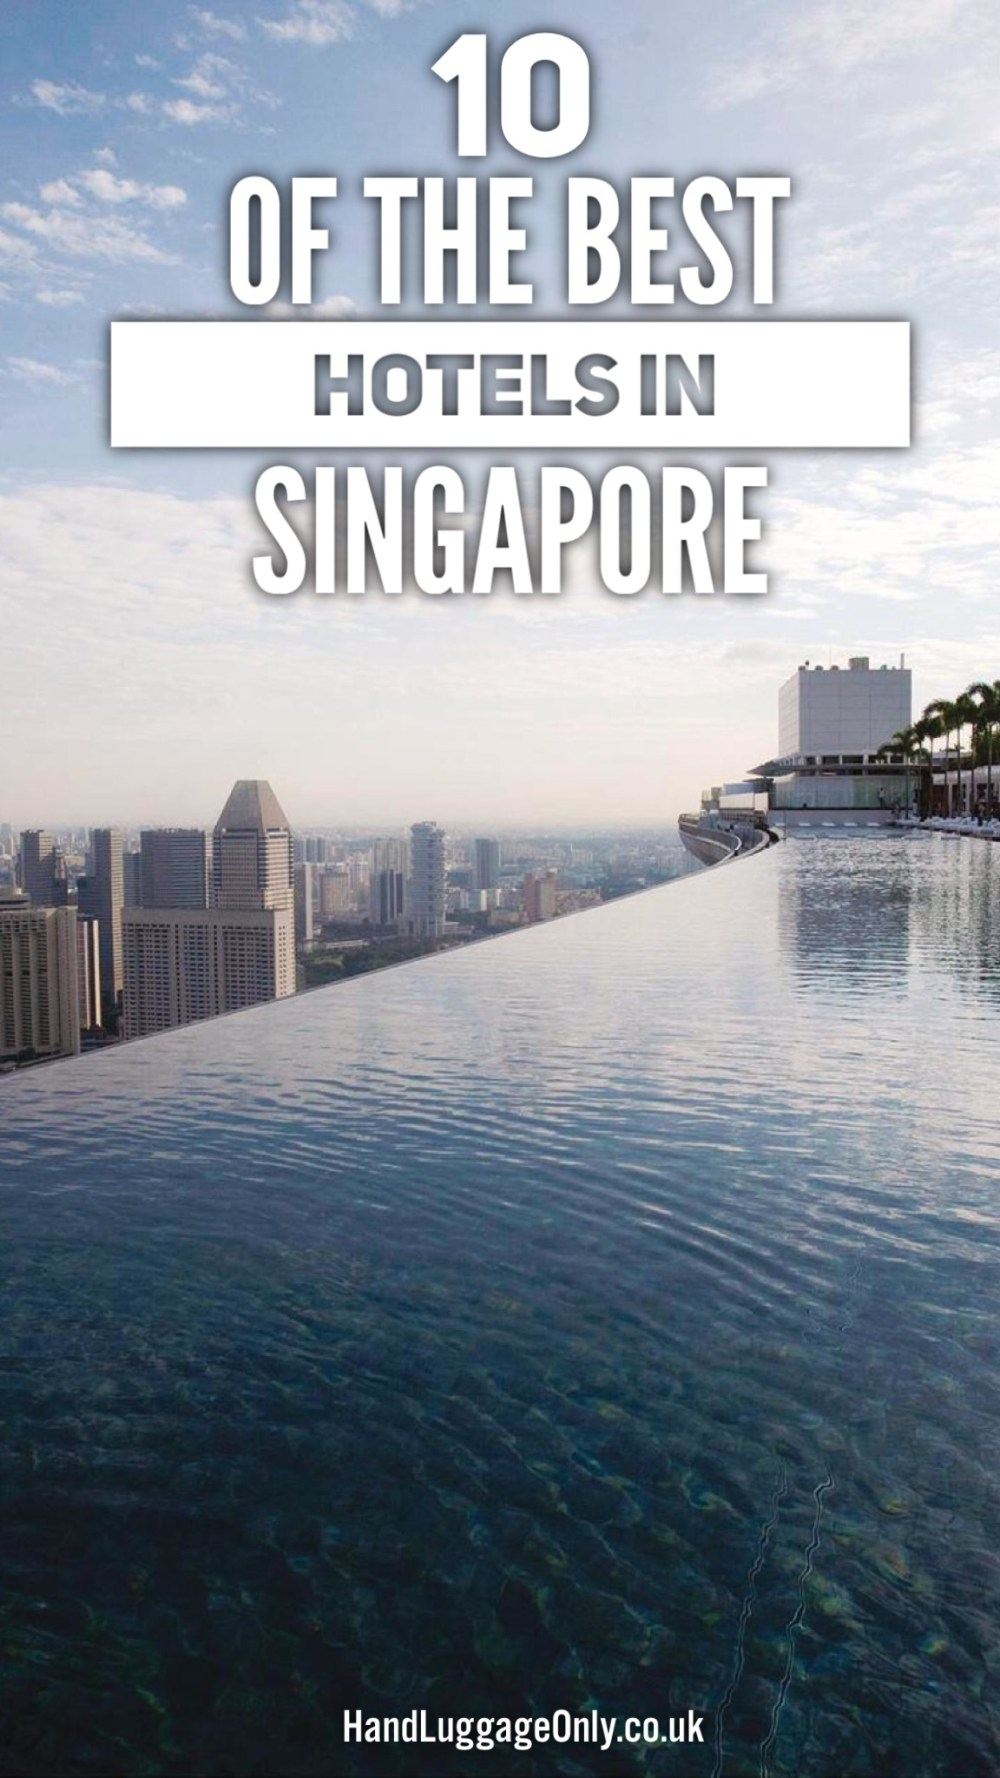 10 Of The Best Hotels To Stay In Singapore (1)